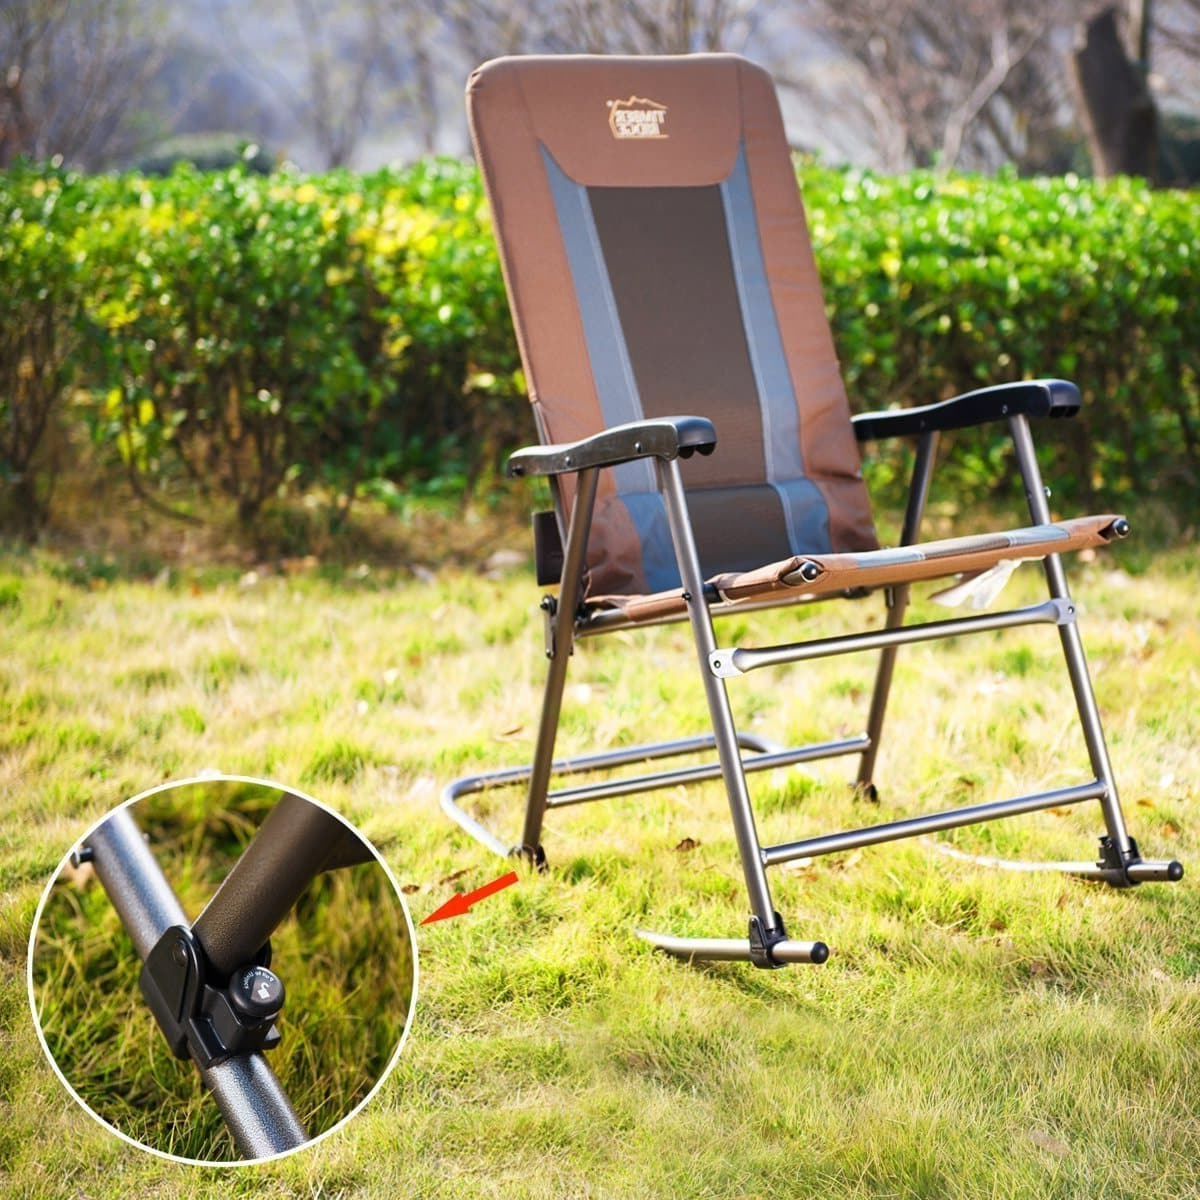 Iron Frame Locking Portable Folding Chairs Inside 2020 Top 10 Best Folding Chairs Reviews In 2019 – Top Best Products (View 19 of 25)